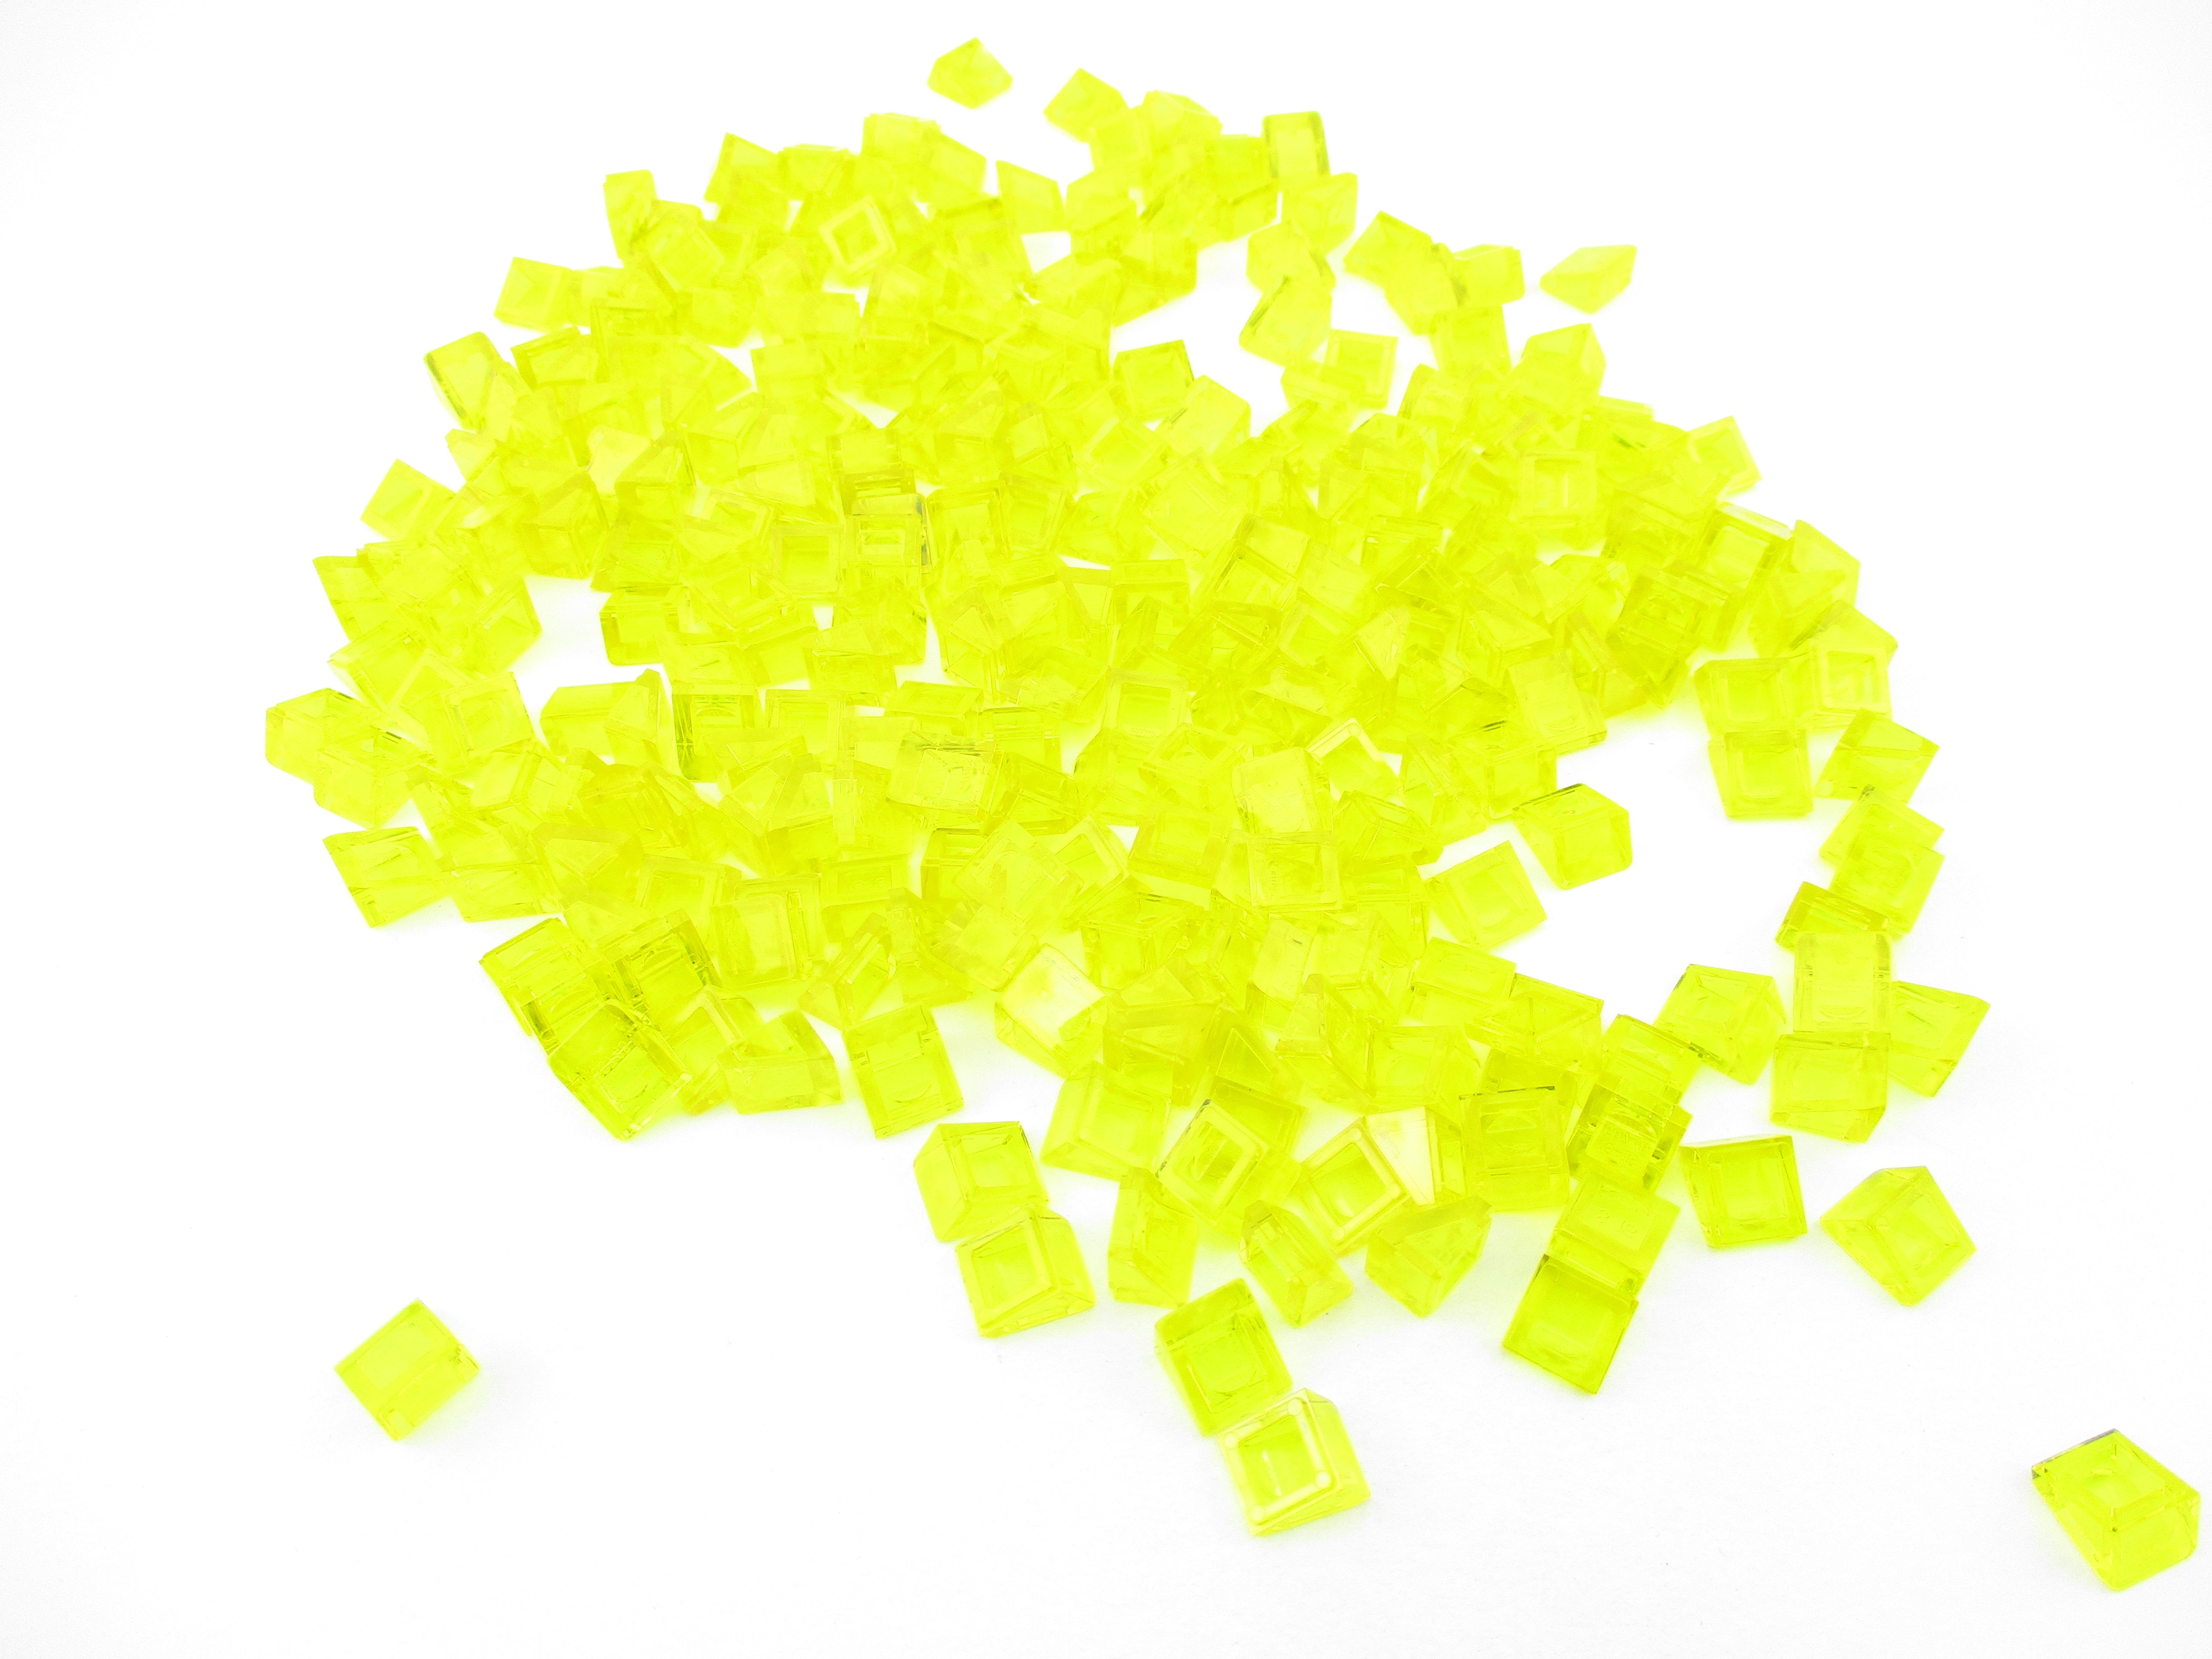 LEGO Trans Yellow Slope 30 1x1x2//3 Lot of 100 Parts Pieces 54200